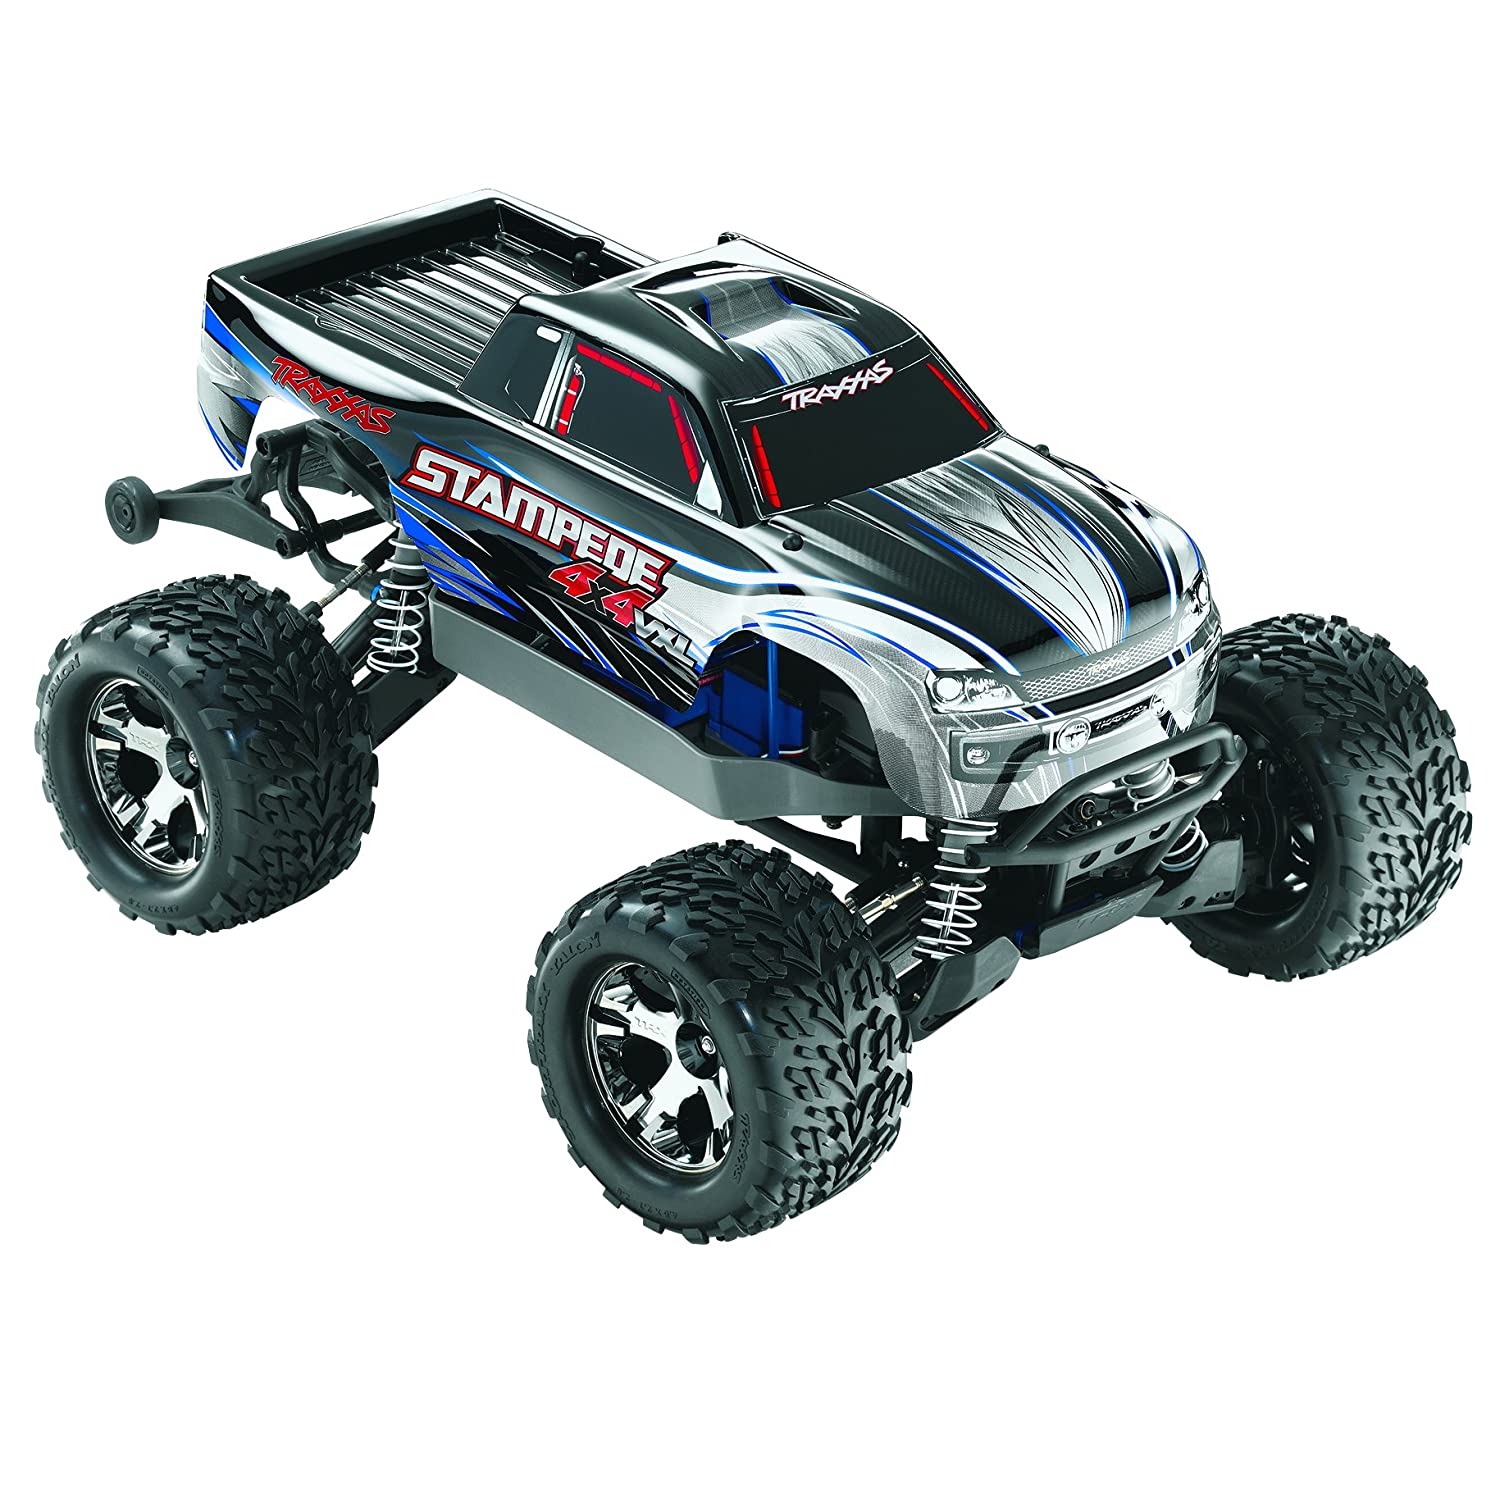 Amazon Traxxas Stampede 4X4 VXL 1 10 Monster Truck RTR with 2 4GHz Radio 3000mAh Battery & 4 Amp Peak DC Charger Toys & Games